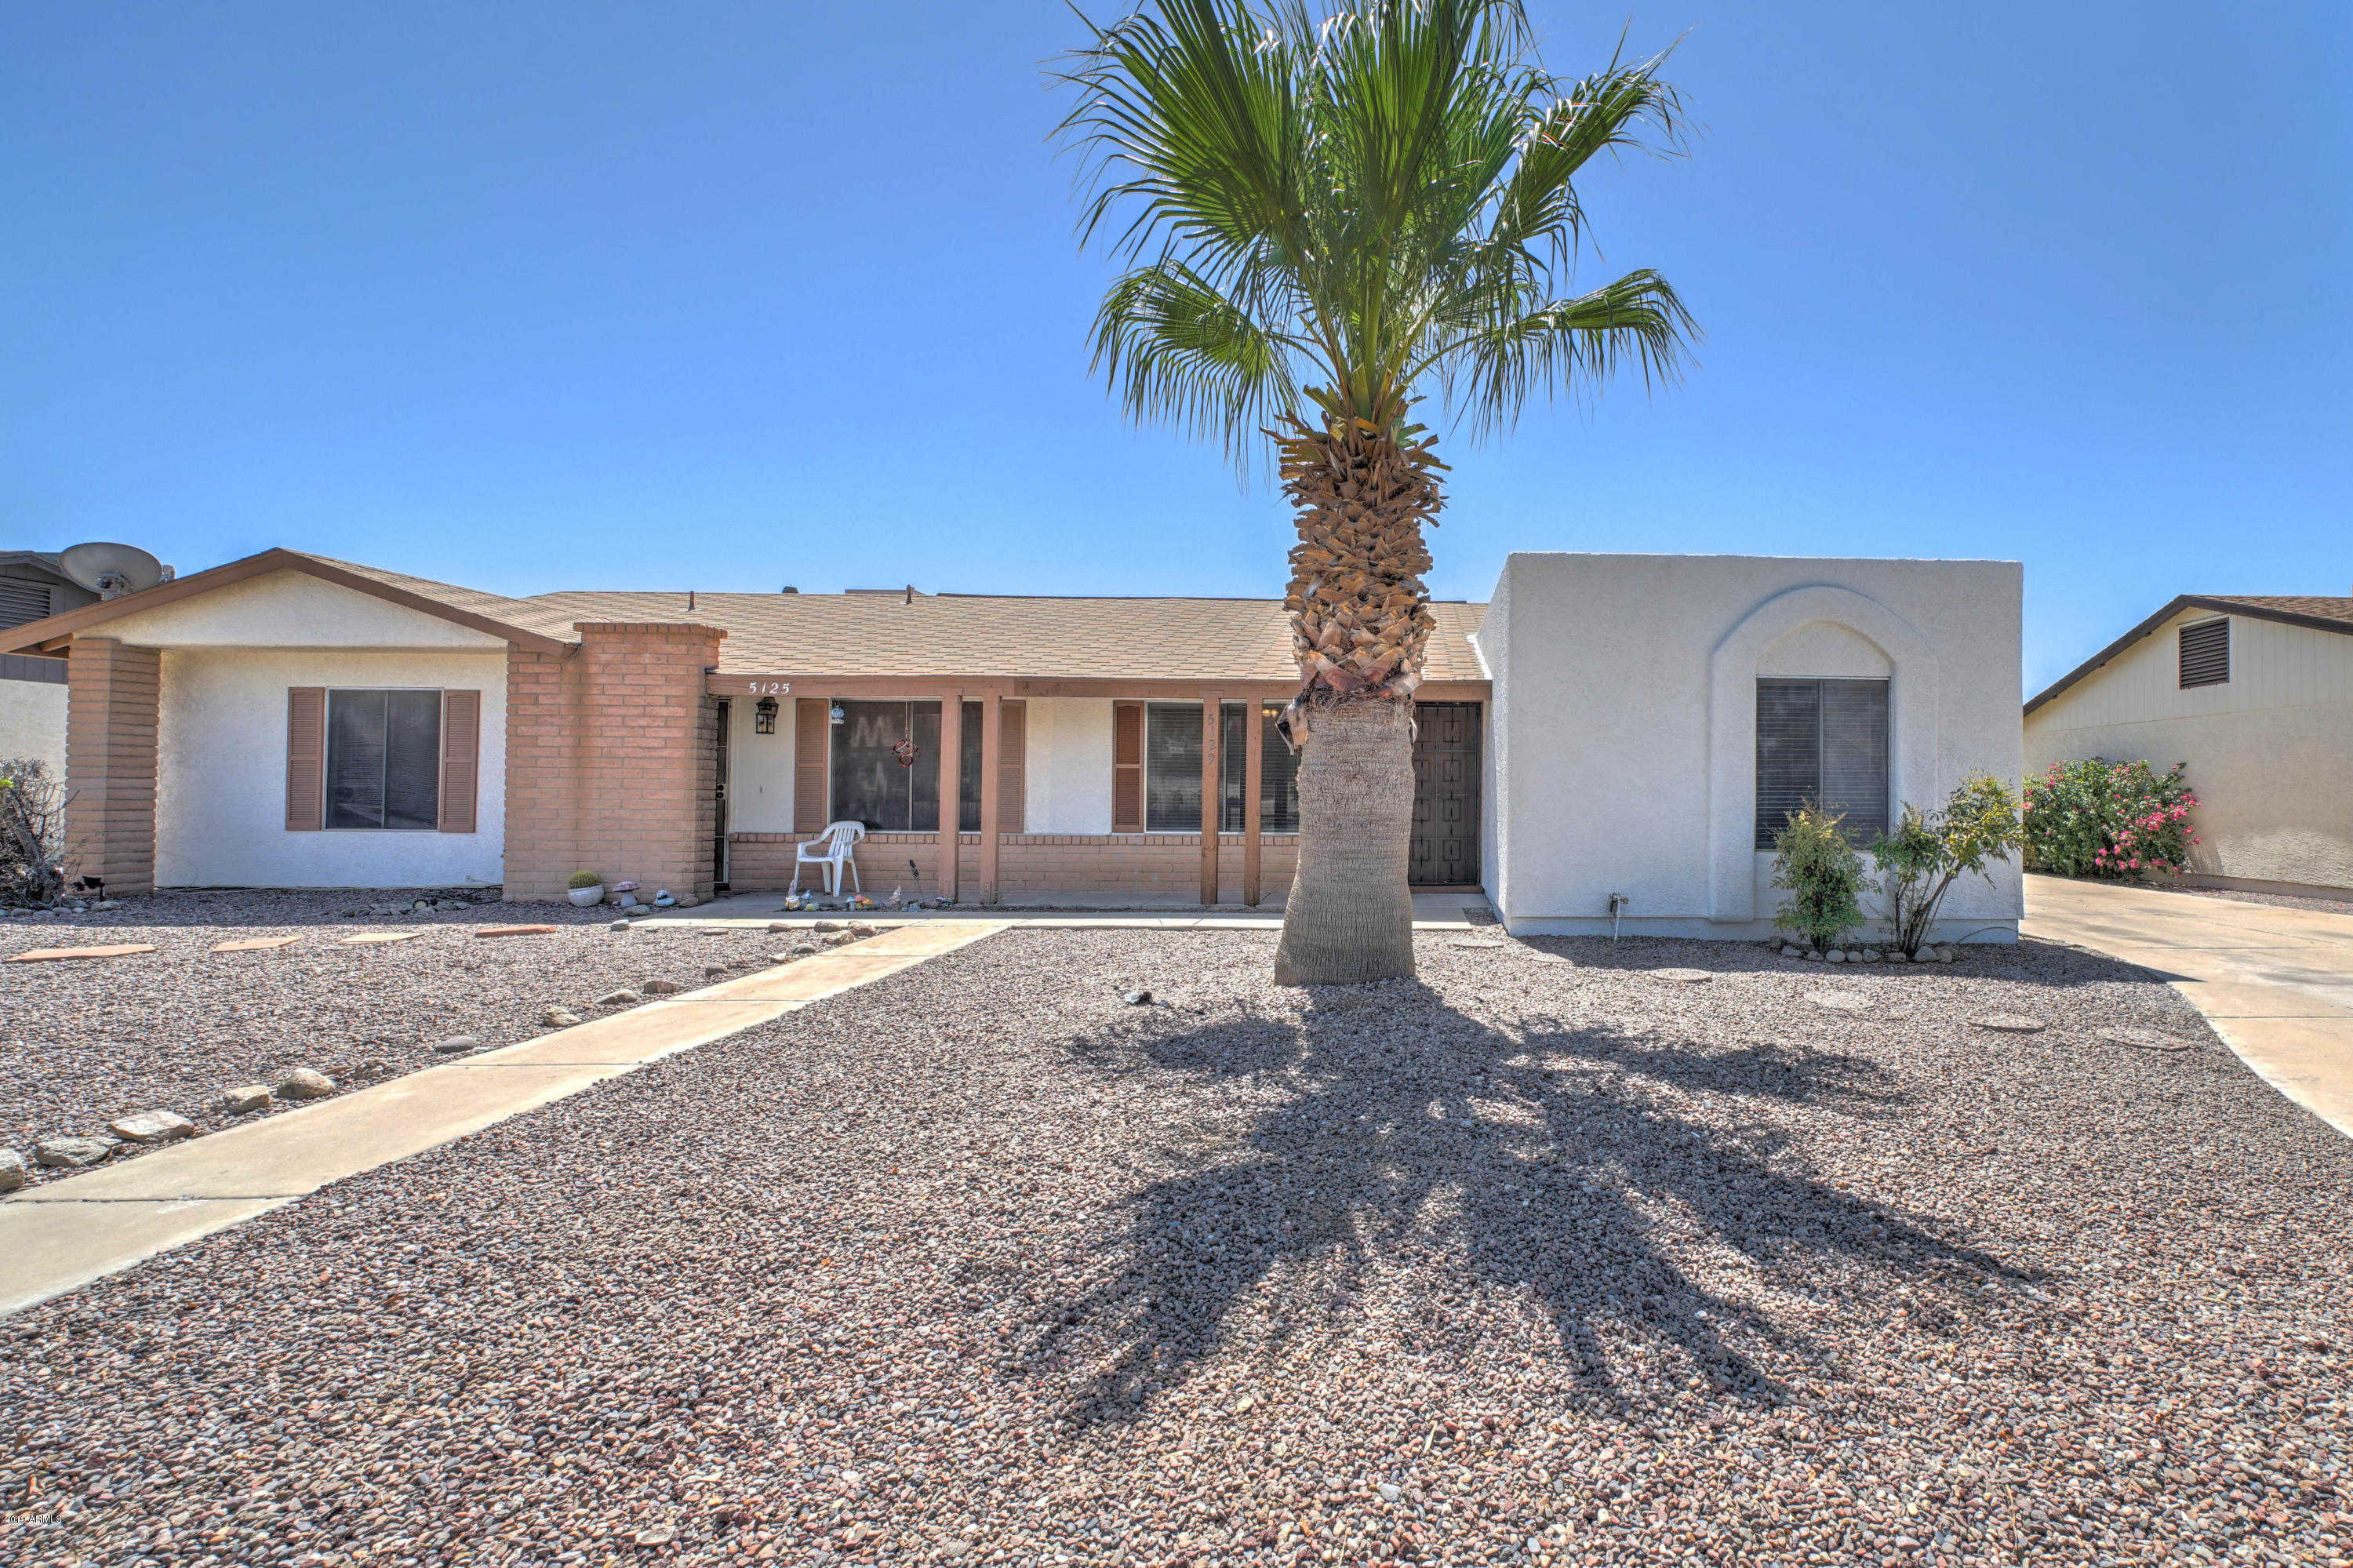 $200,000 - 3Br/2Ba -  for Sale in Thunderbird Palms, Glendale